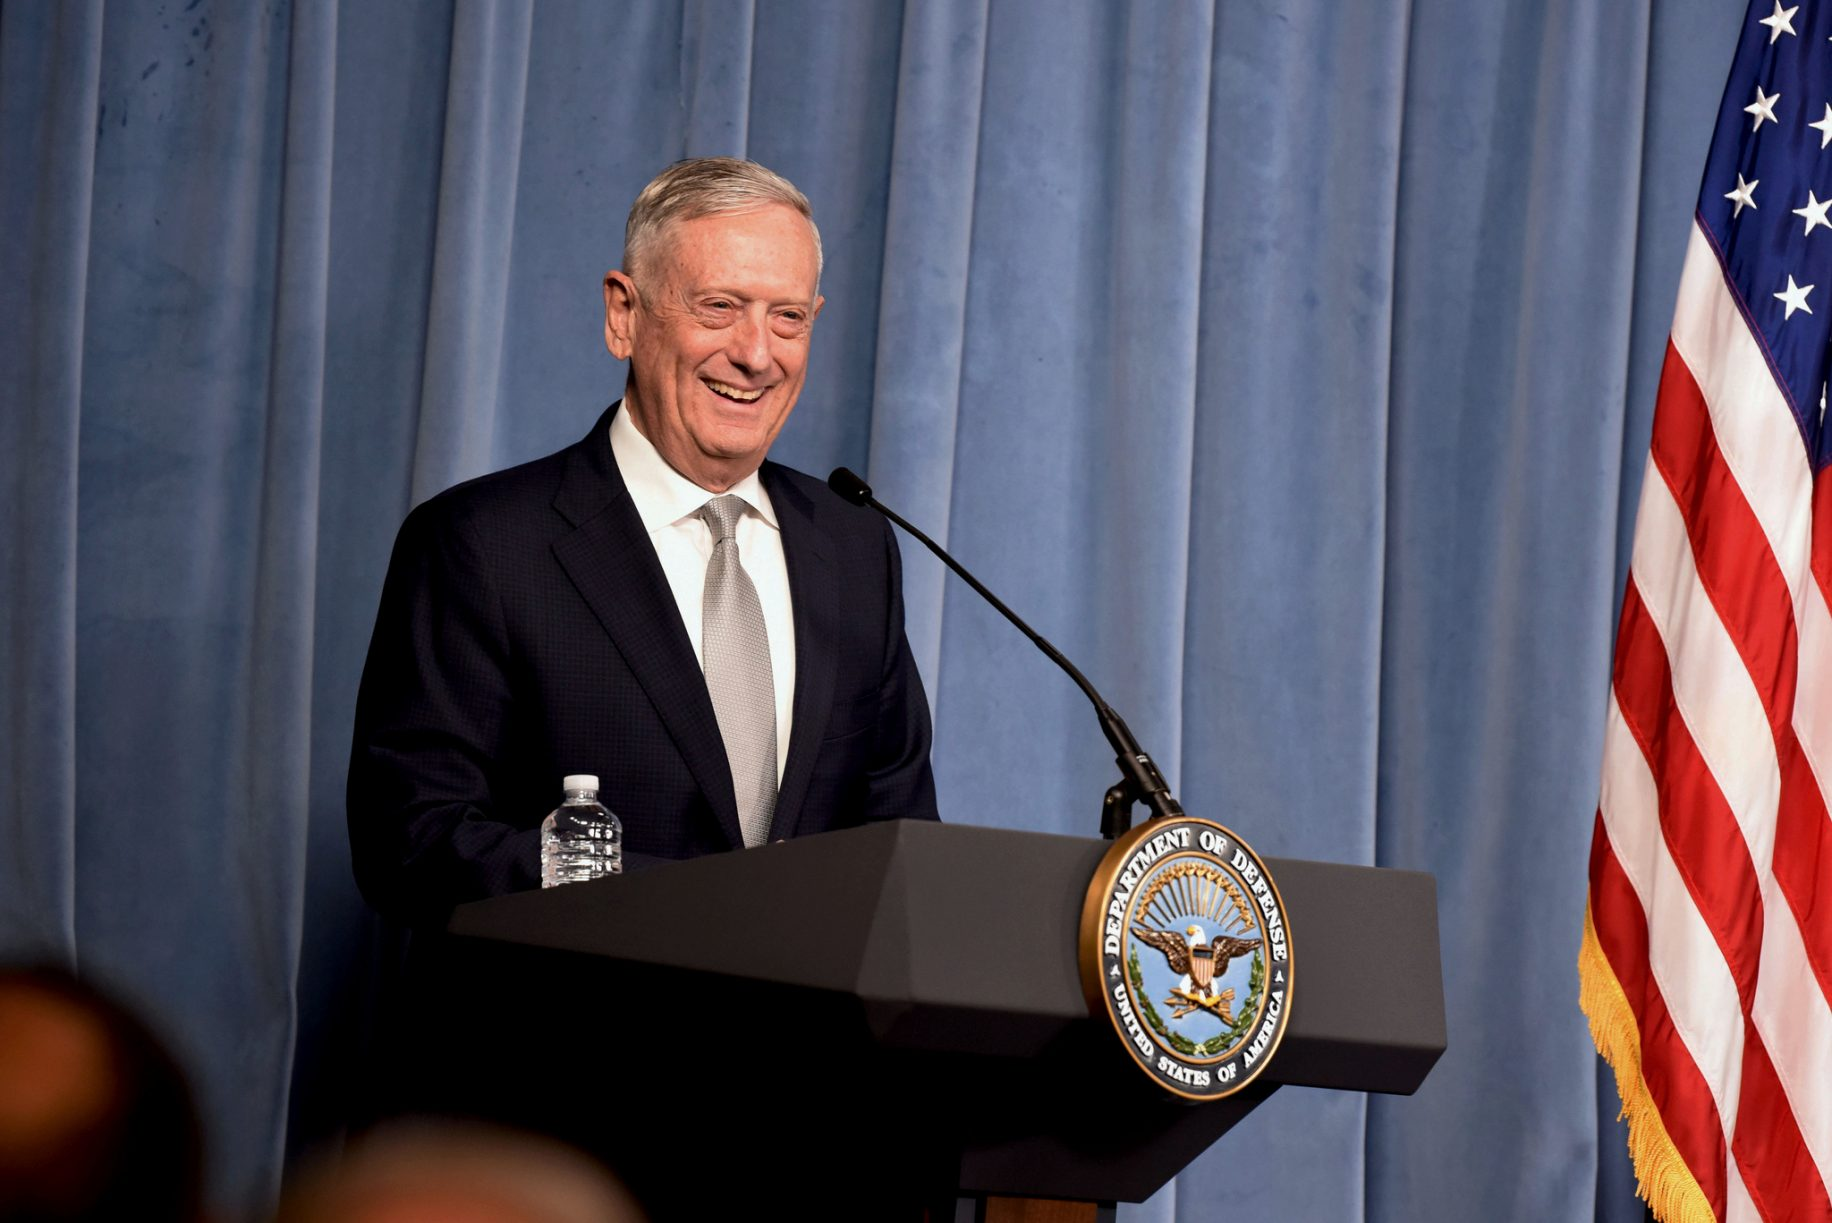 Mattis is back exactly where he left from before being secretary of defense